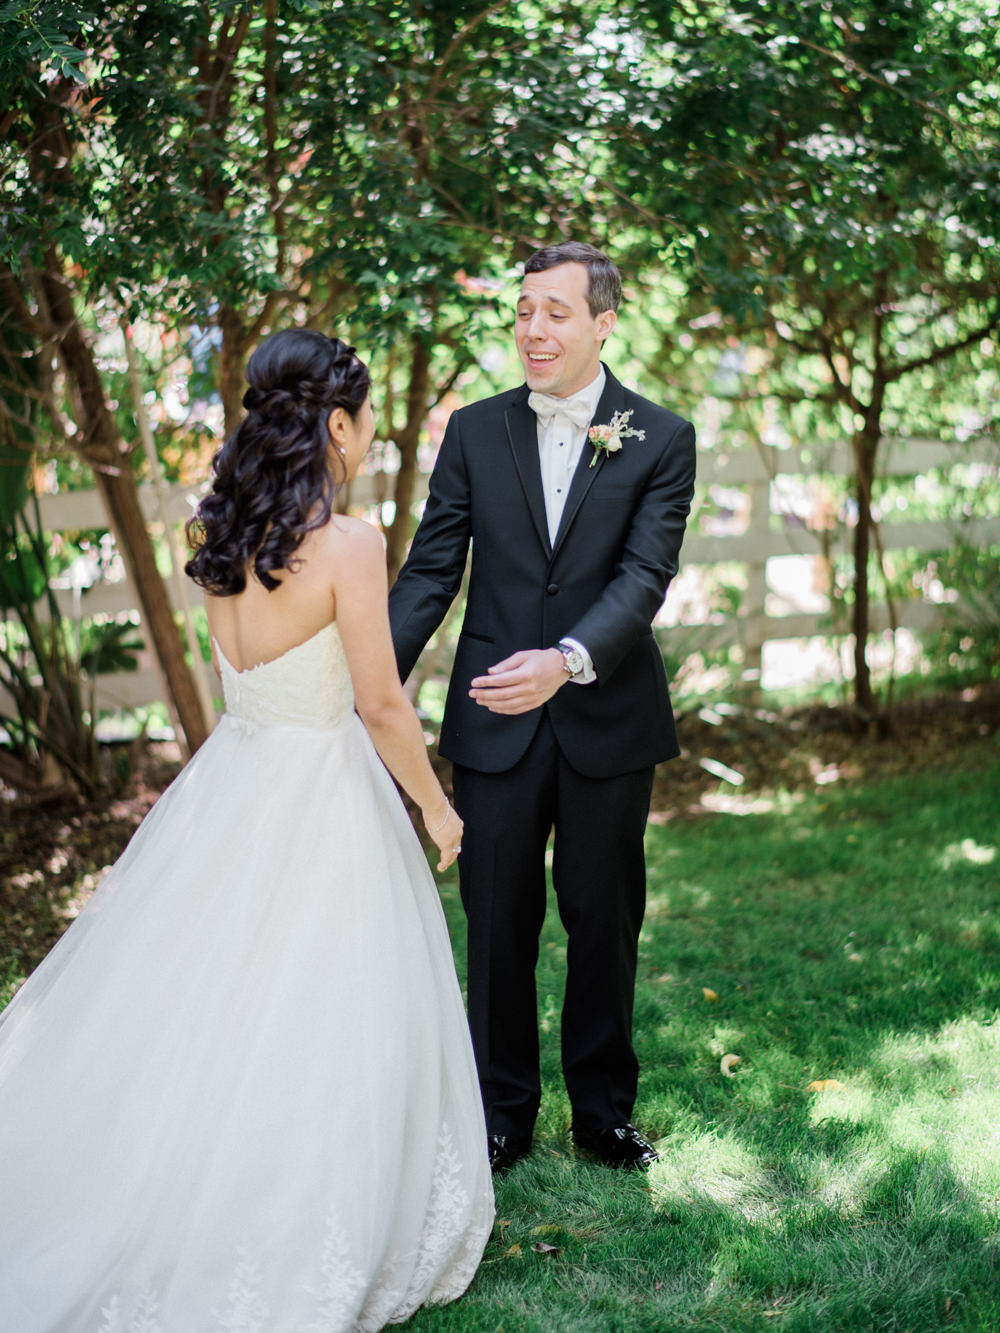 RomanticGardenWedding_WhiskersandWillow_035.jpg